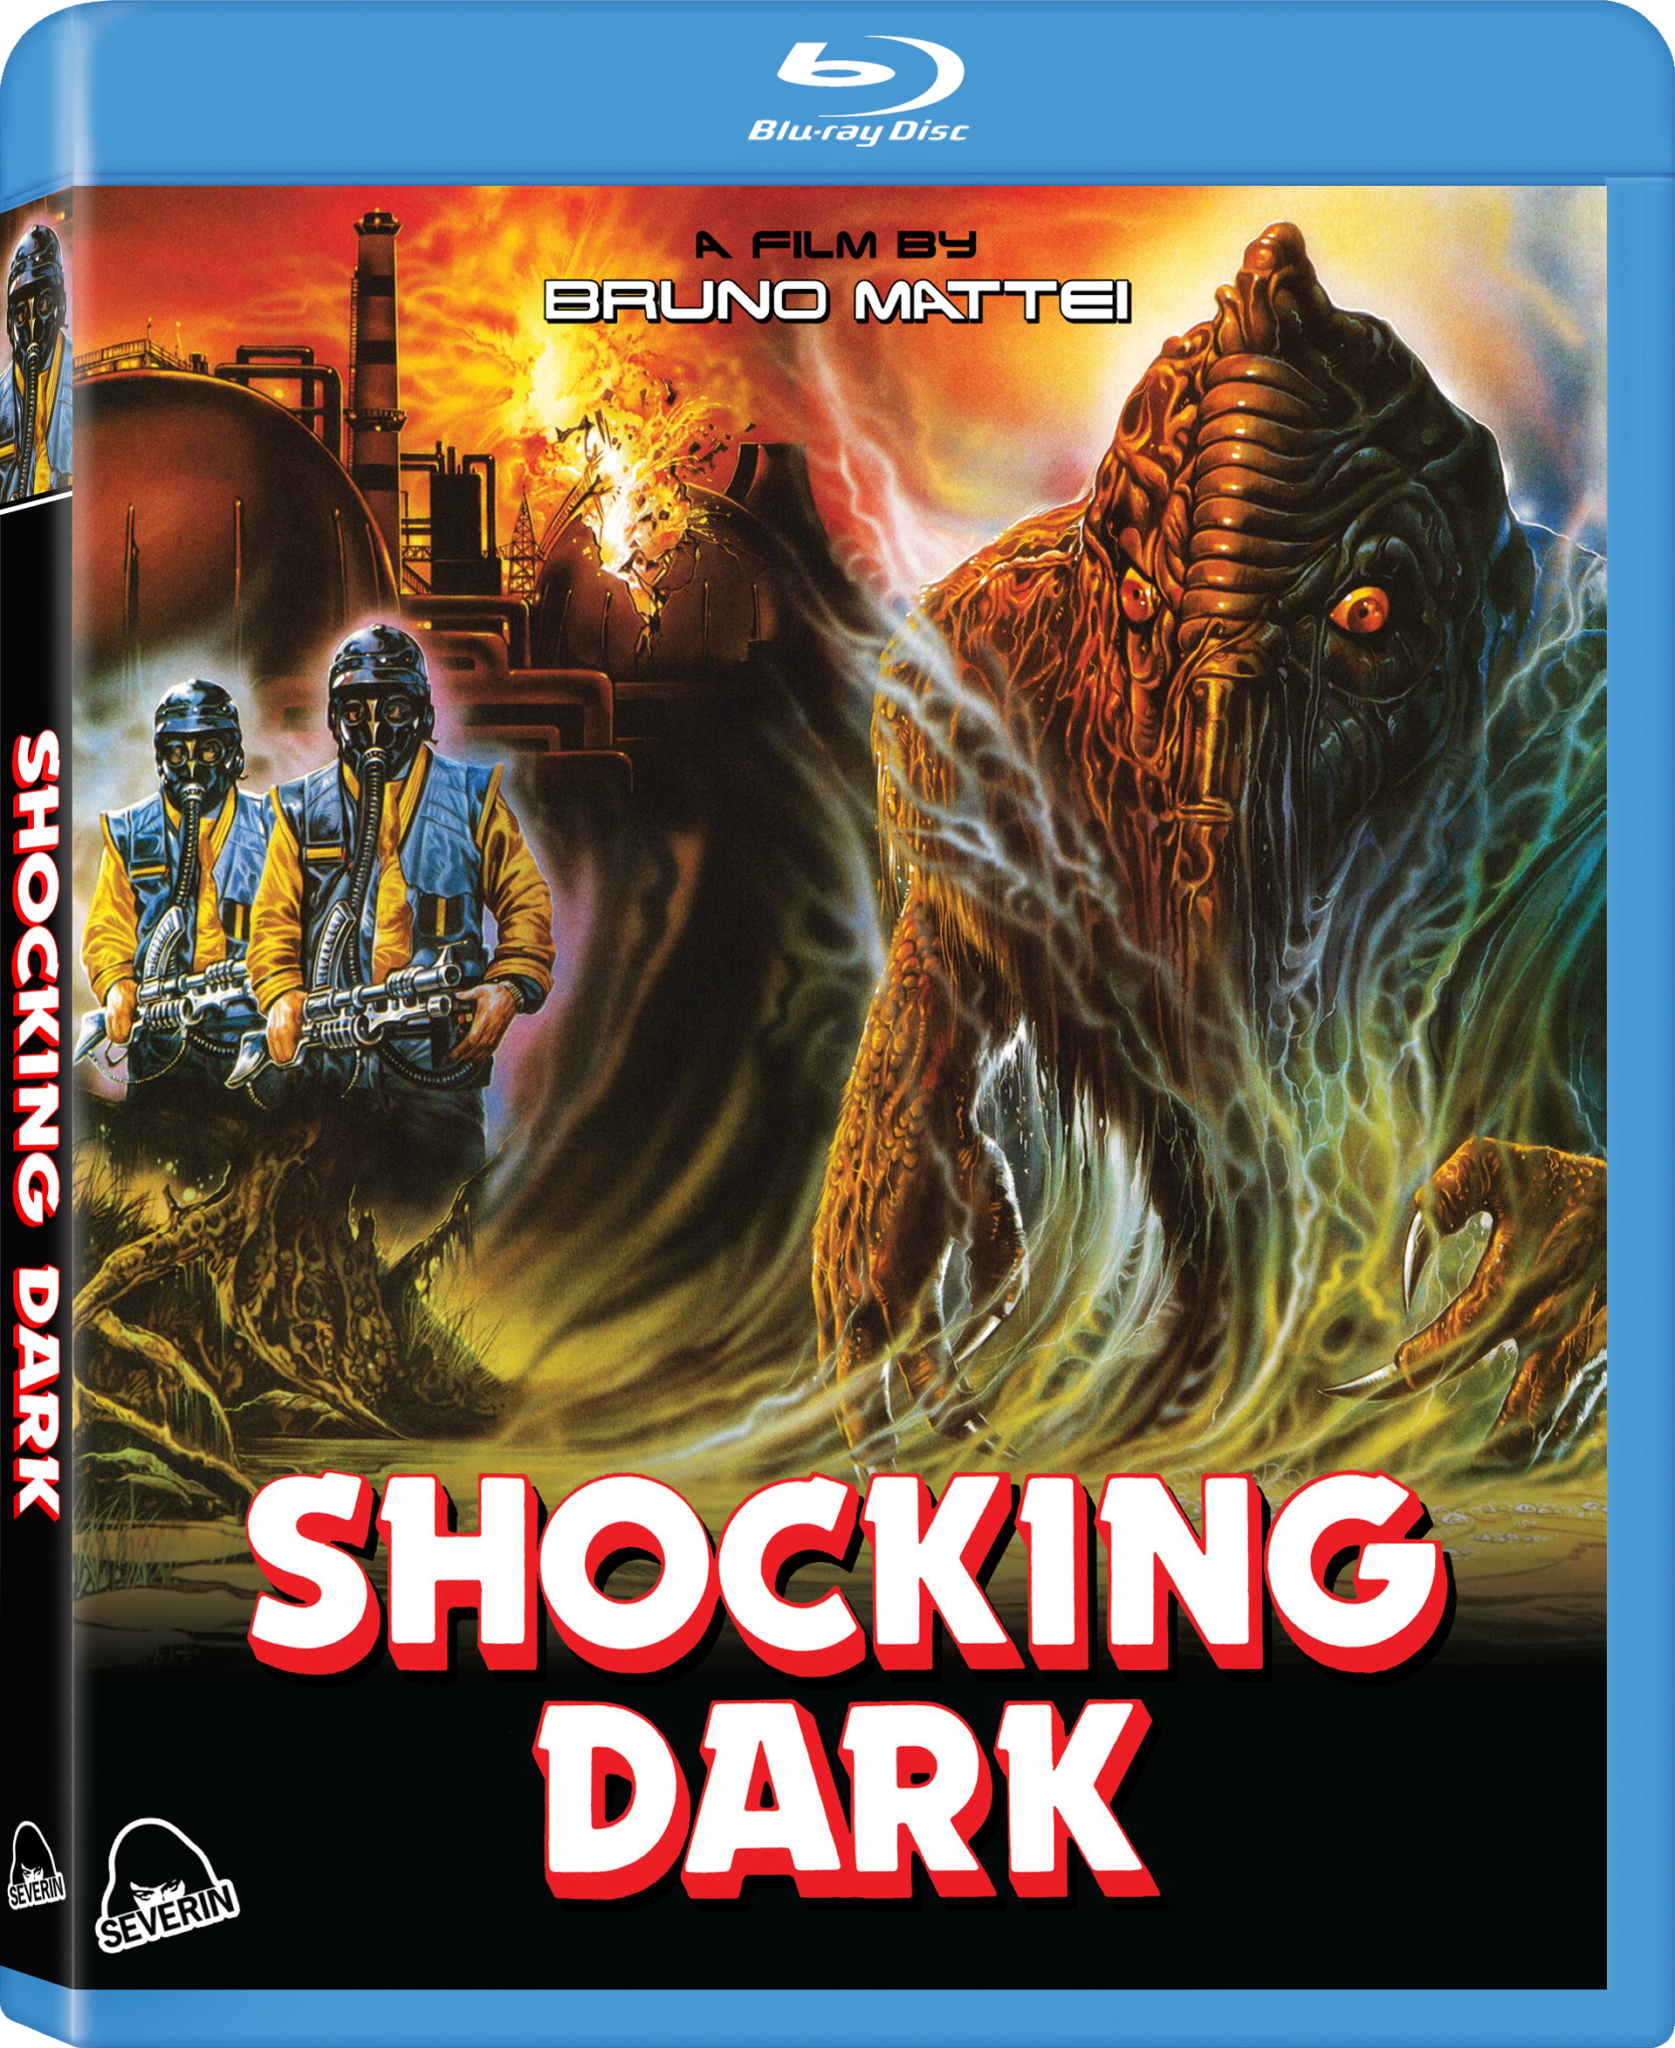 shocking dark blu-ray